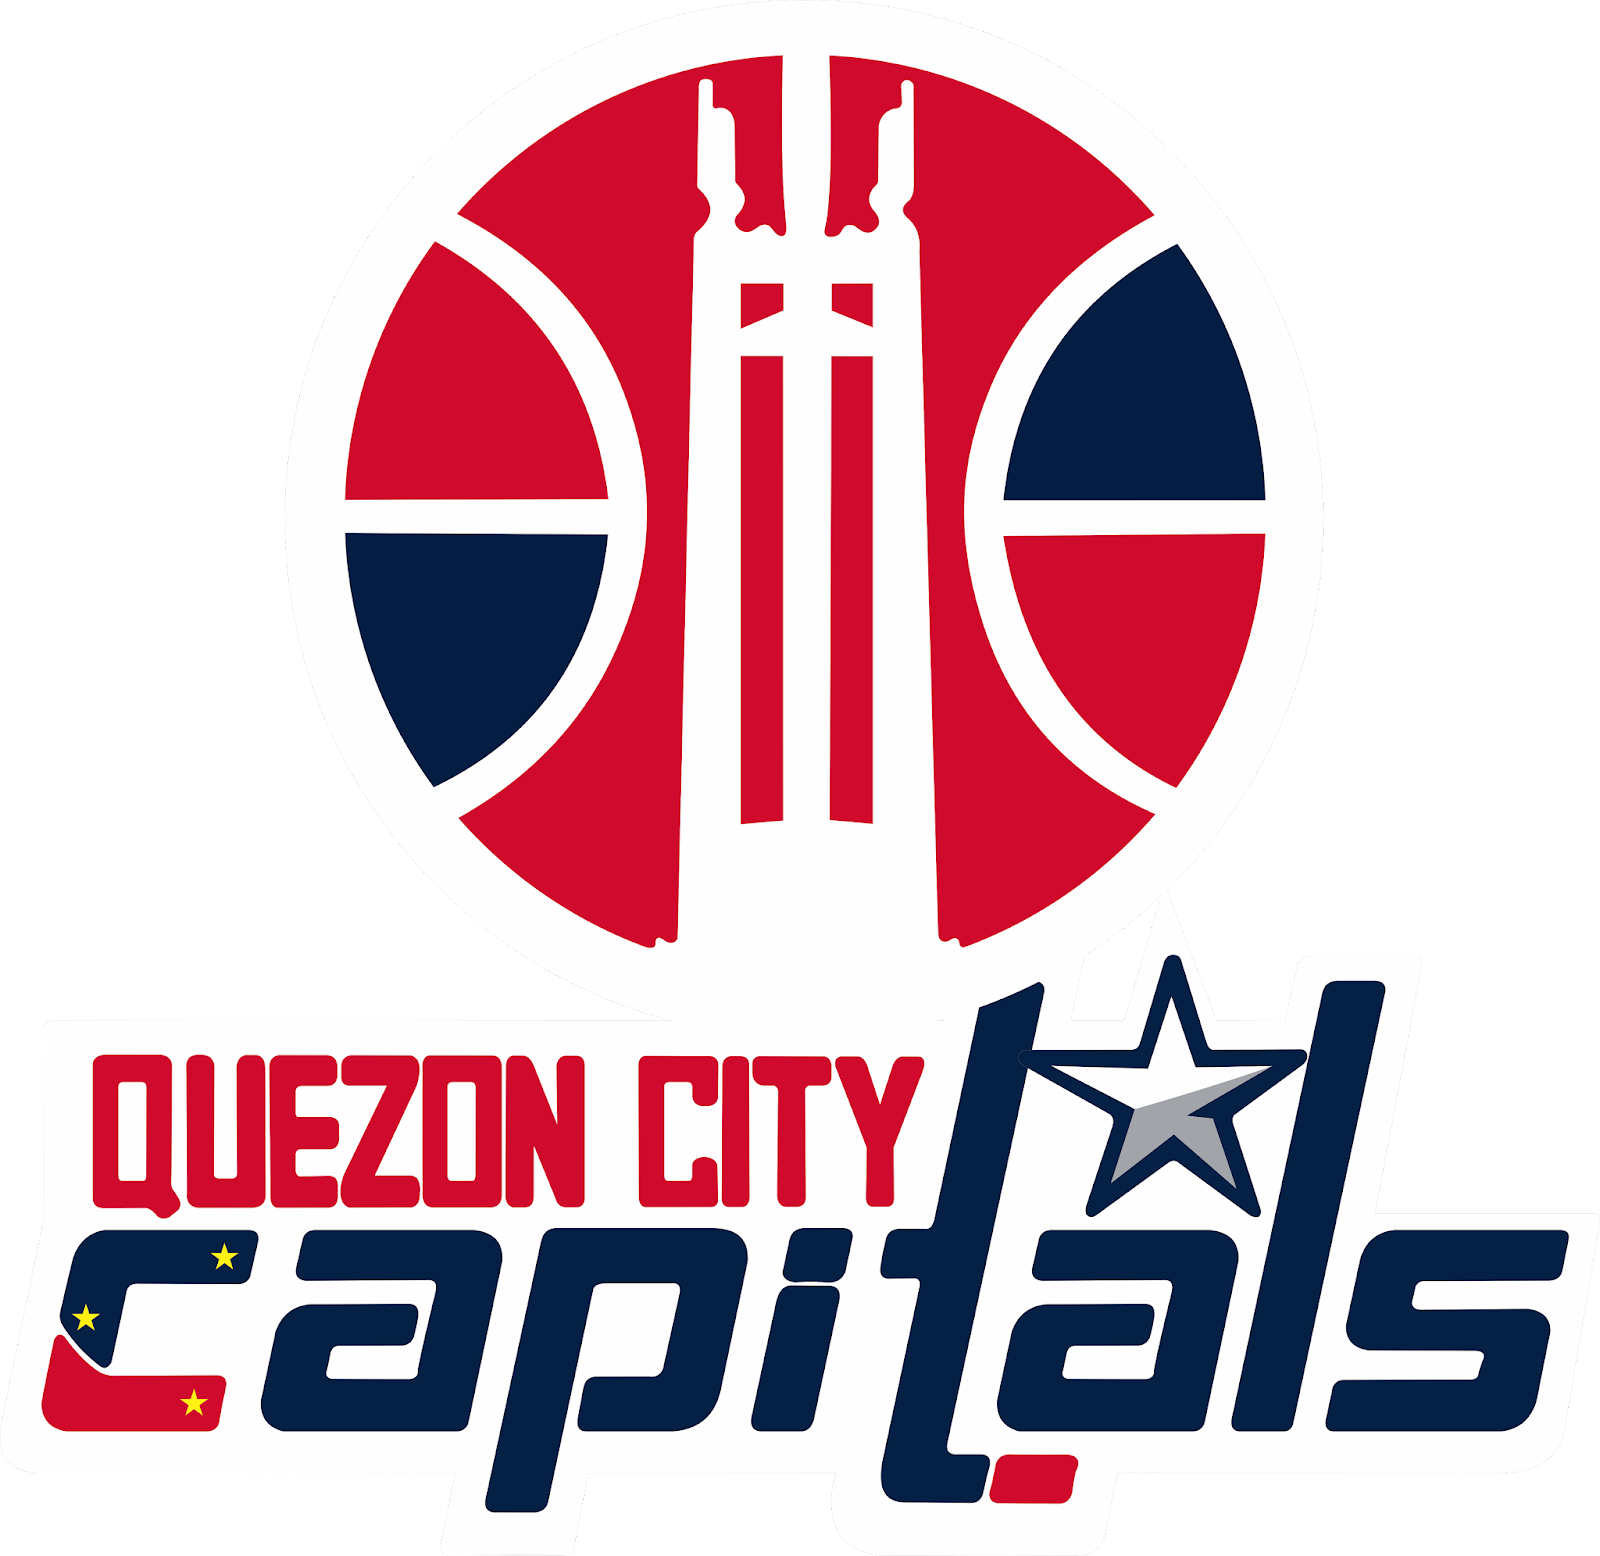 LOGO NATION PHILIPPINES: Quezon City Capitals